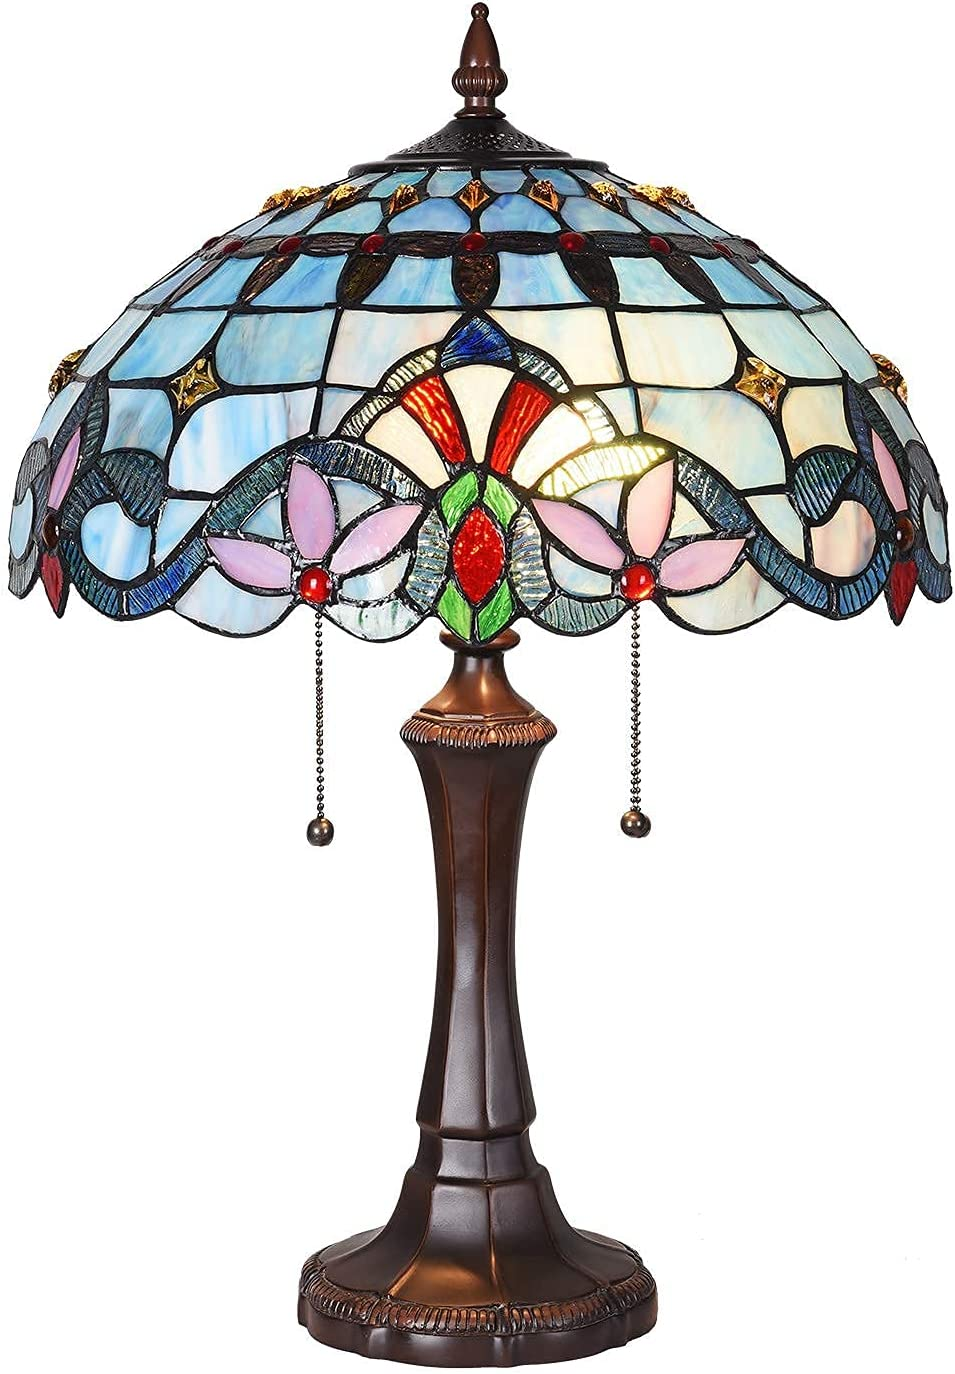 Maxxmore Tiffany Table Lamp 2-Light Desk Glass Stained Reading discount Selling rankings